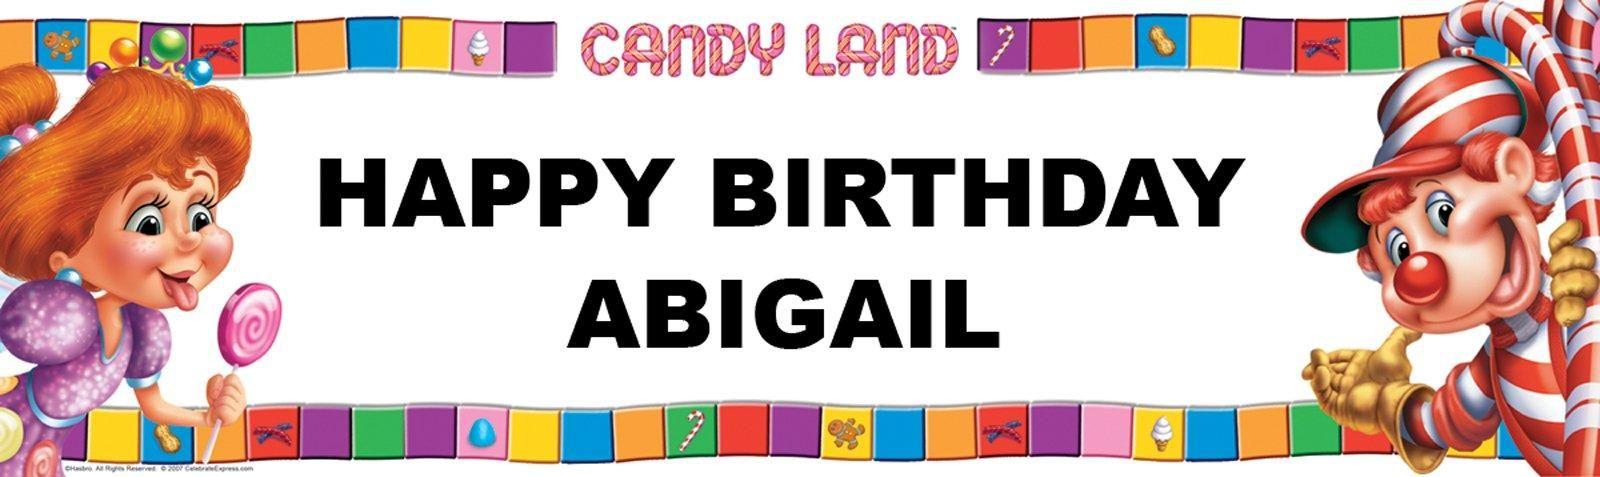 candyland birthday banners personalized ; 19ff6cf3e080818c644c8e73eaeaf36c